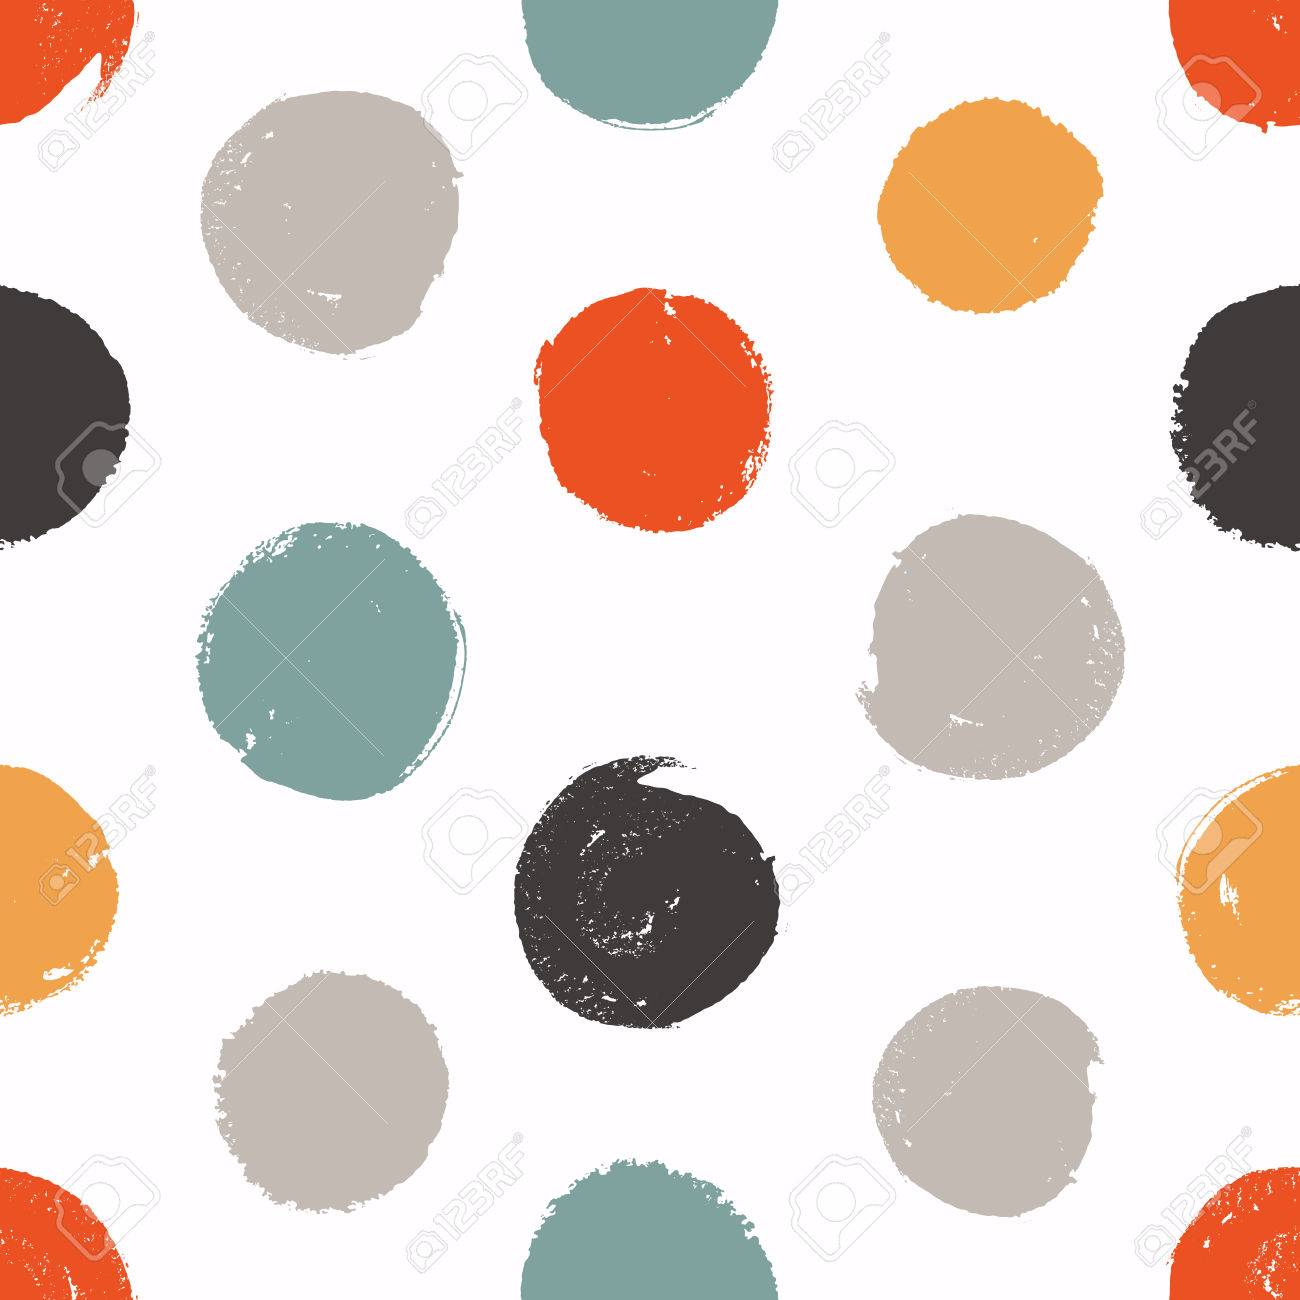 Seamless circles. Vector texture. Painted background with colored circles. - 61772147